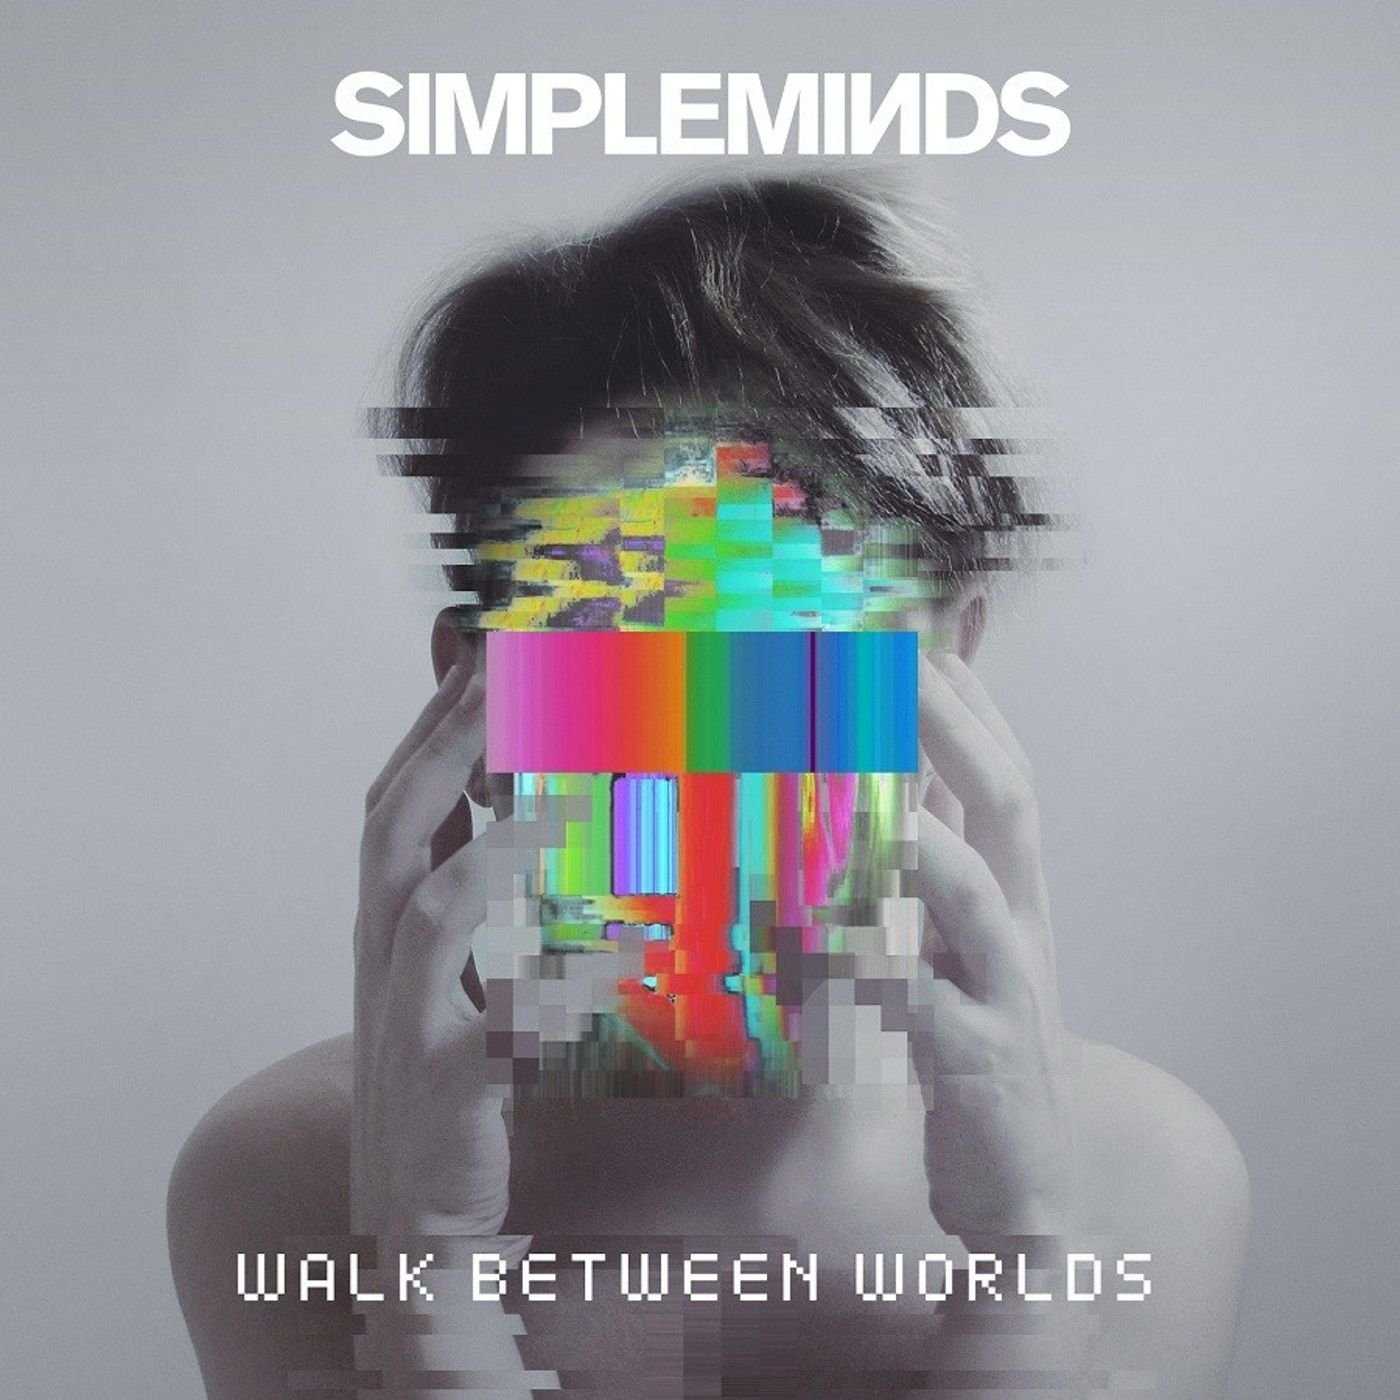 Recording Simple Minds 'Walk Between Worlds'